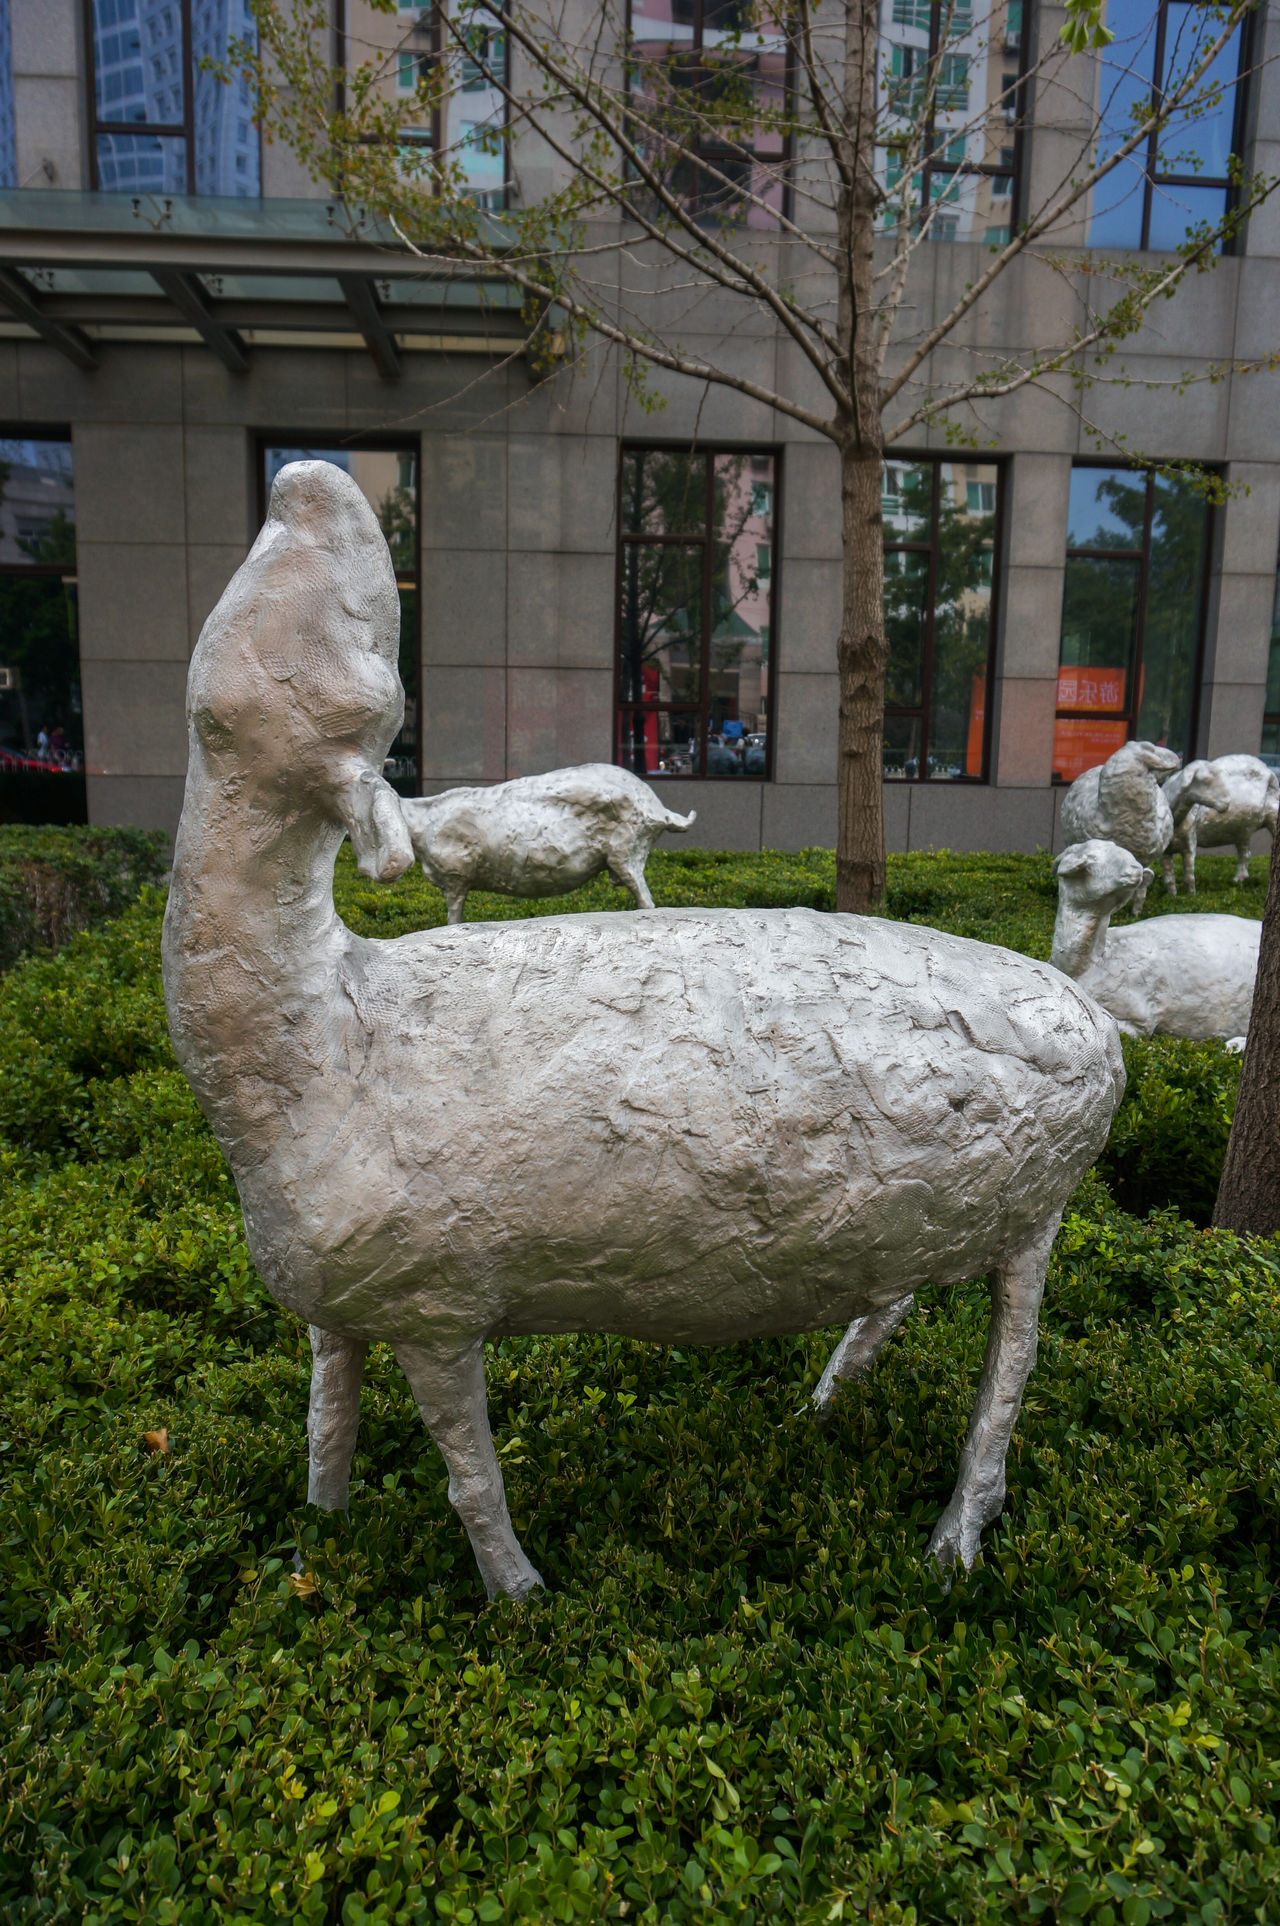 Statue of sheep in 798 art district in Beijing, China 798 798 Art Zone 798艺术区 Animal Themes Art District Art District Beijing Beijing, China China Close-up Grass No People One Animal Outdoors Sheep Statue